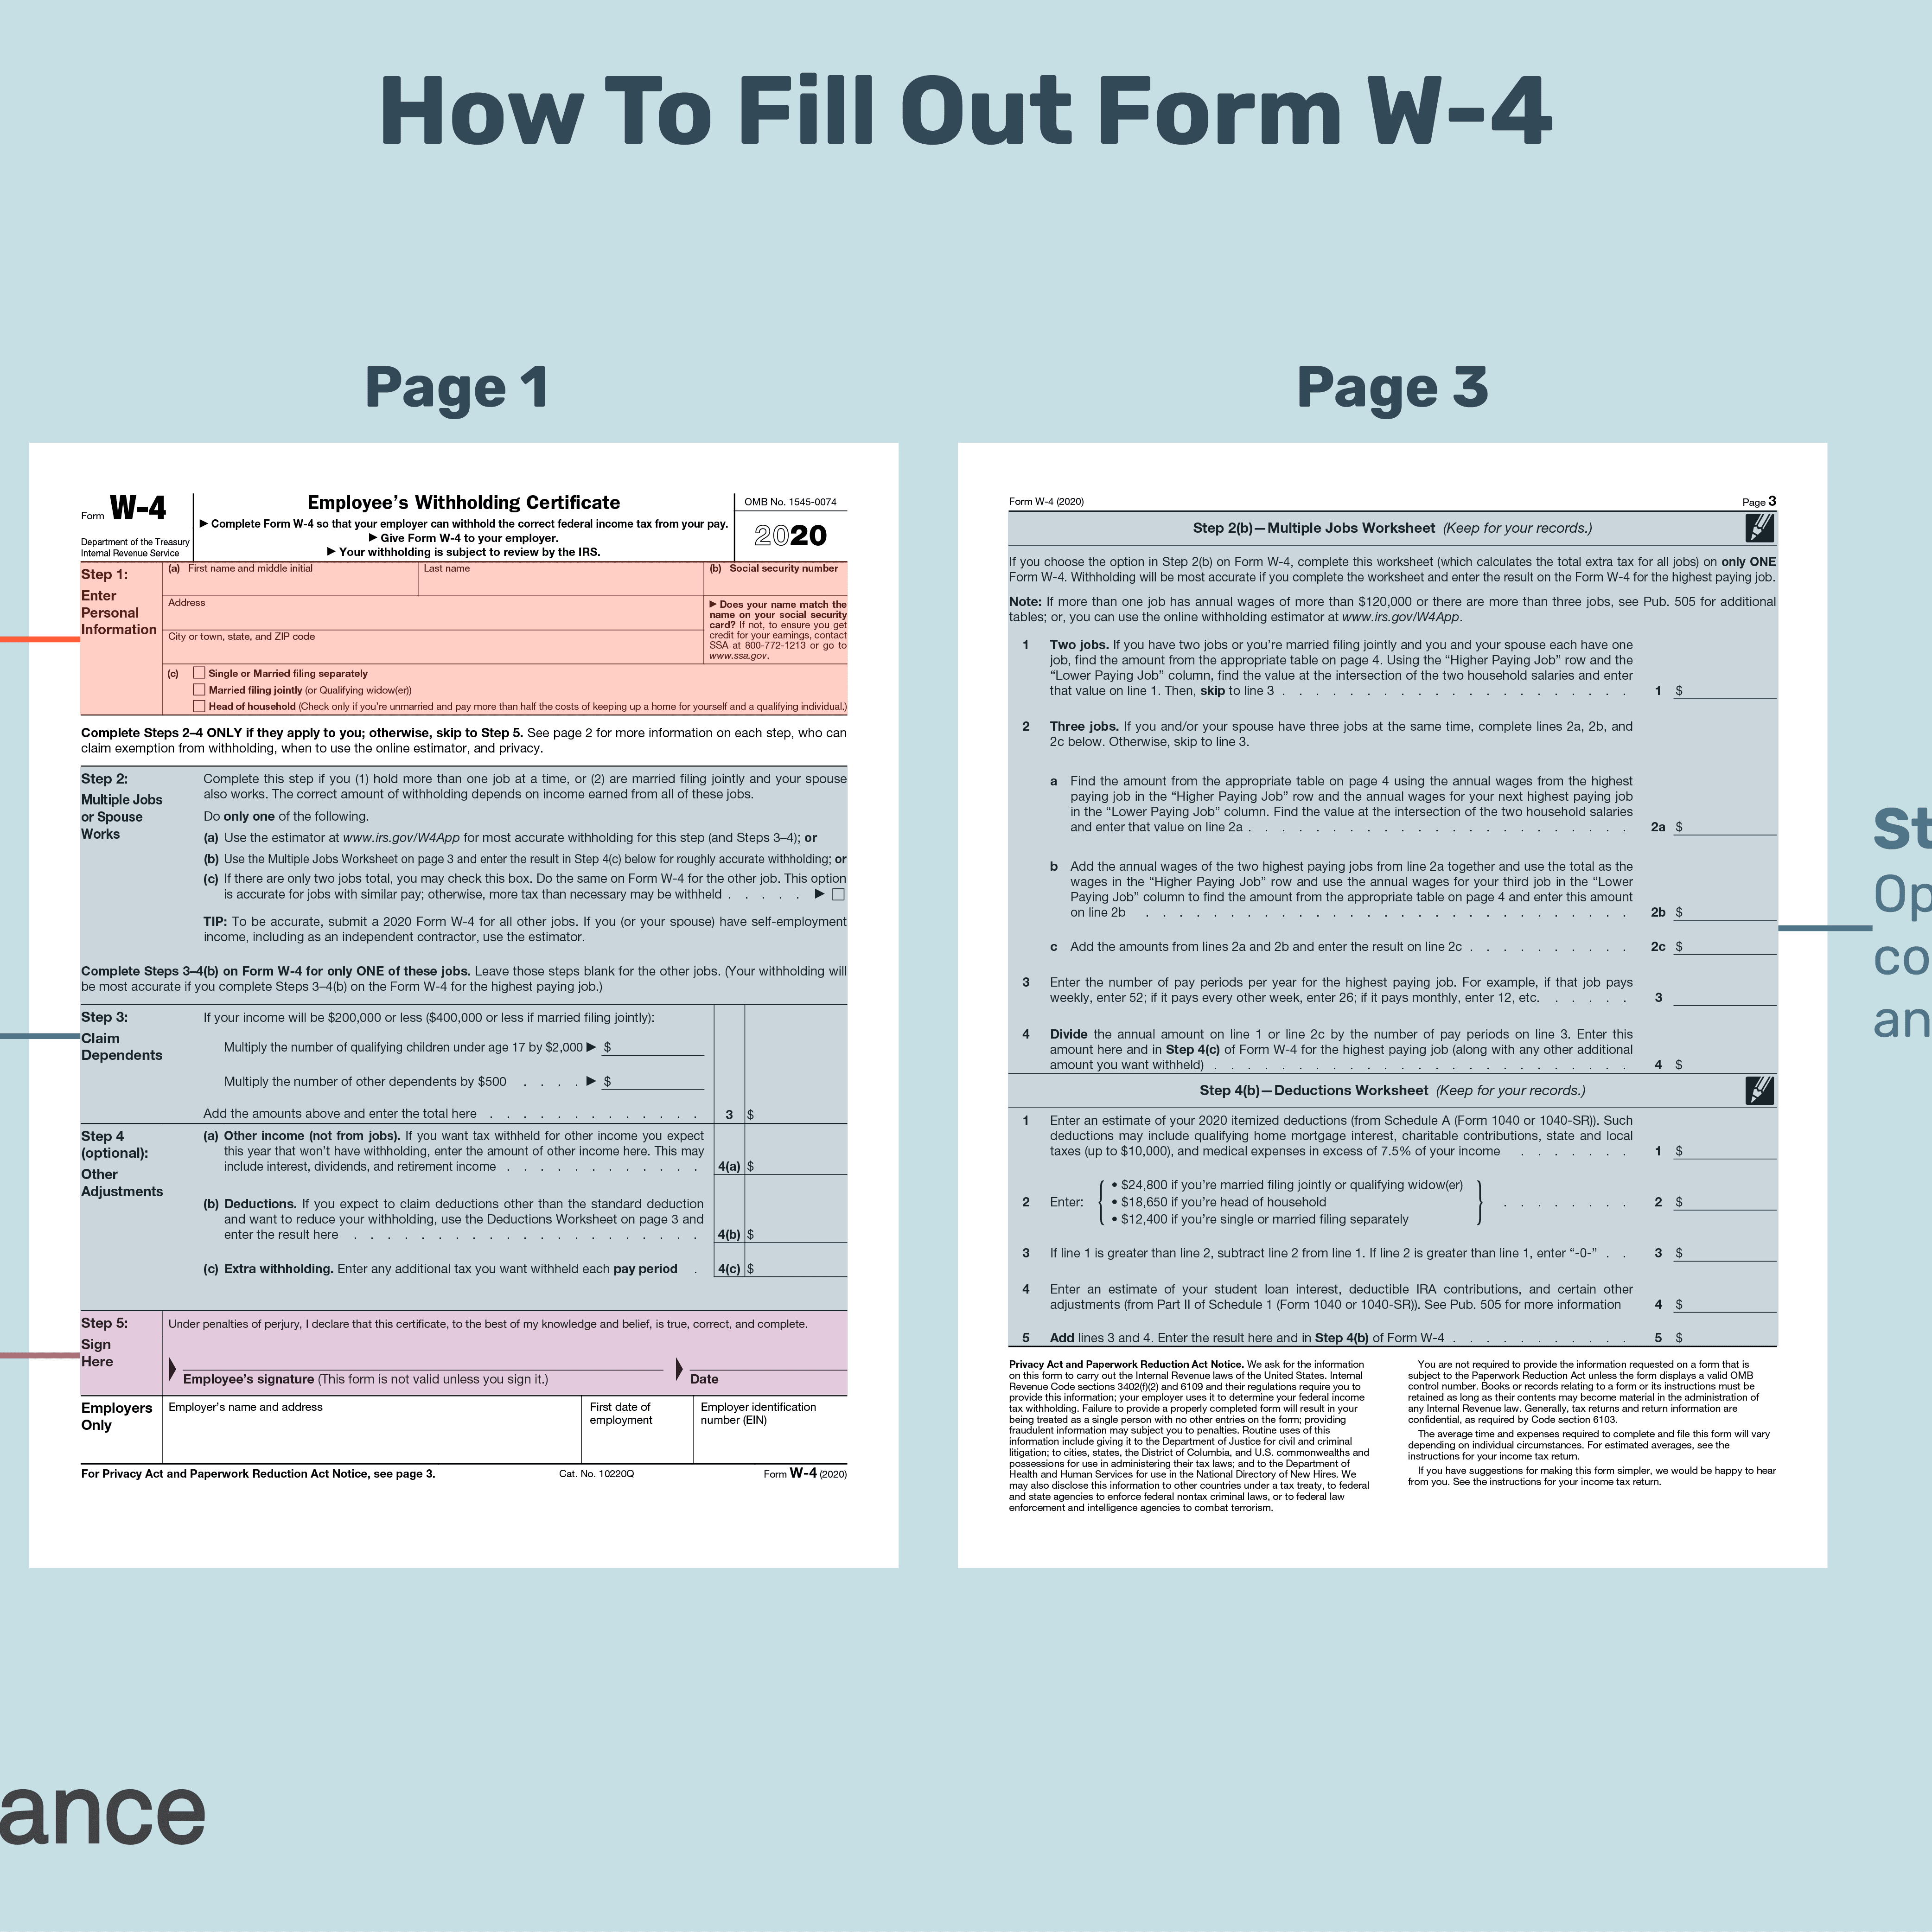 How To Fill Out A W4 Form For A New Job